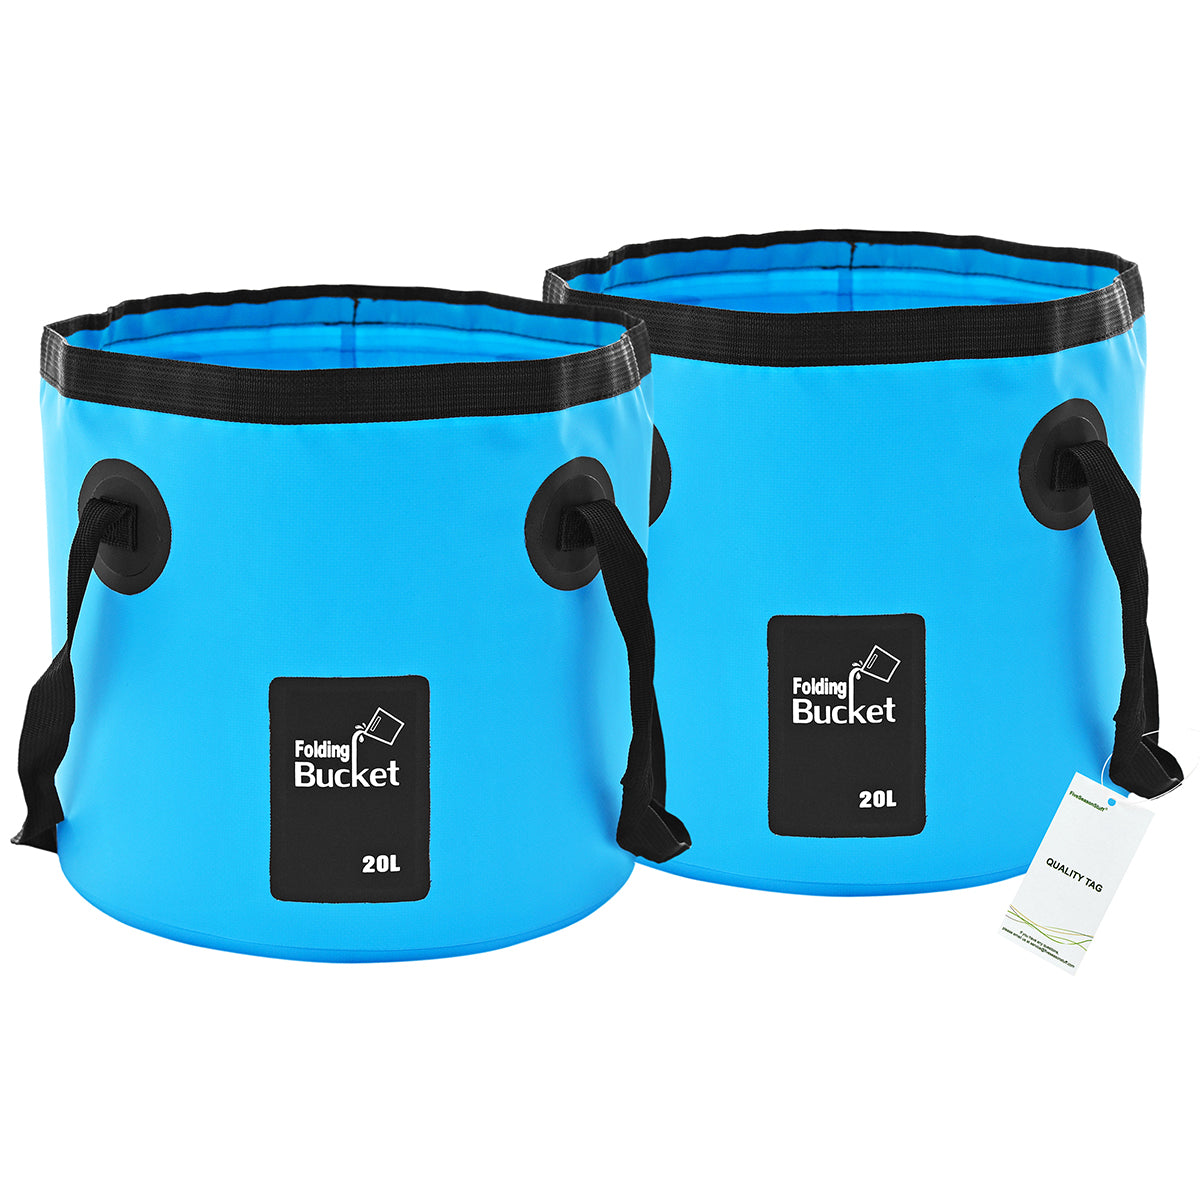 2 Collapsible Buckets 20 Liters